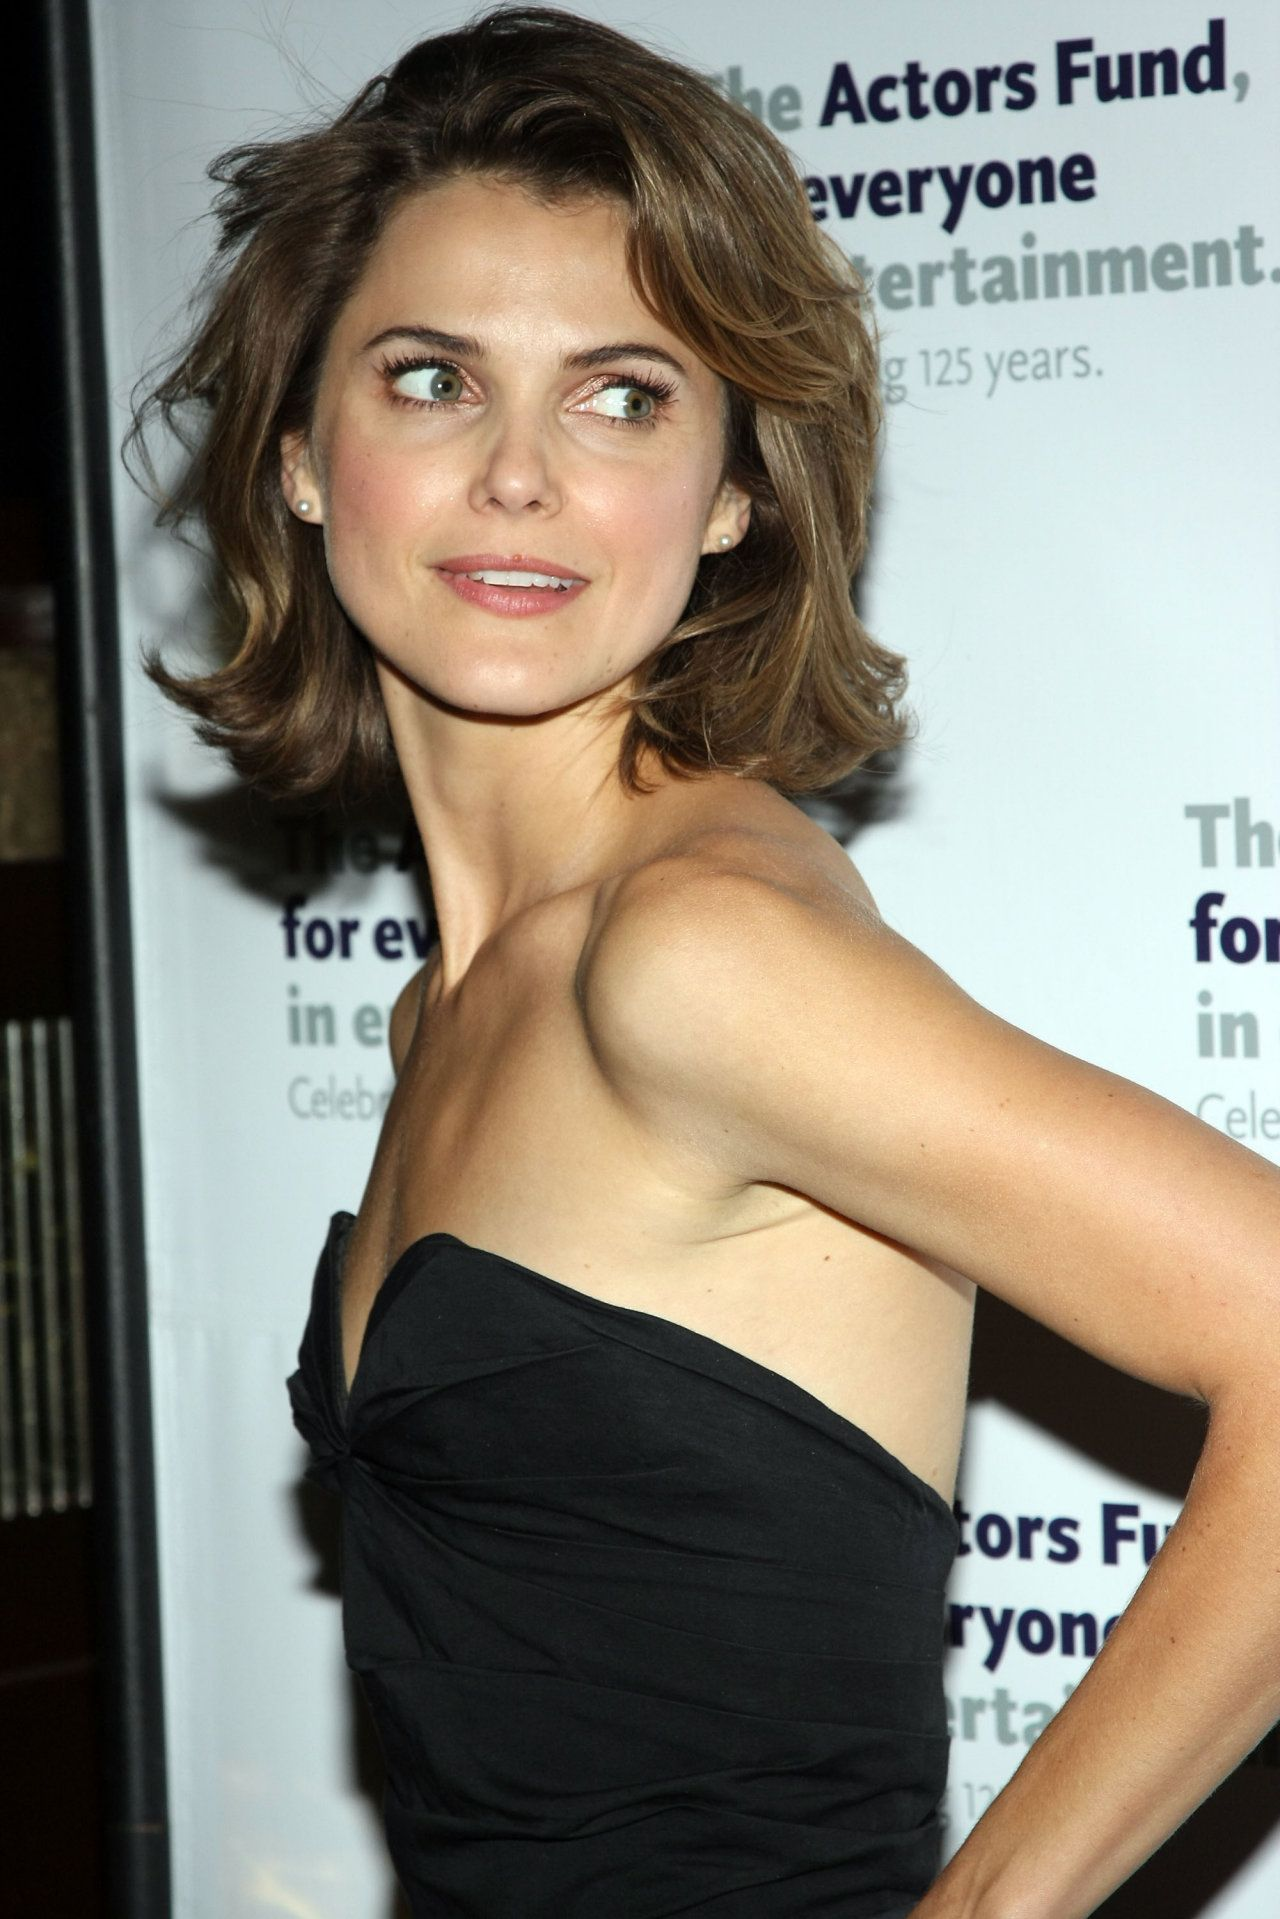 http://www.wallpapers21.com/images2/keri-russell-85075/keri-russell-85075.jpg